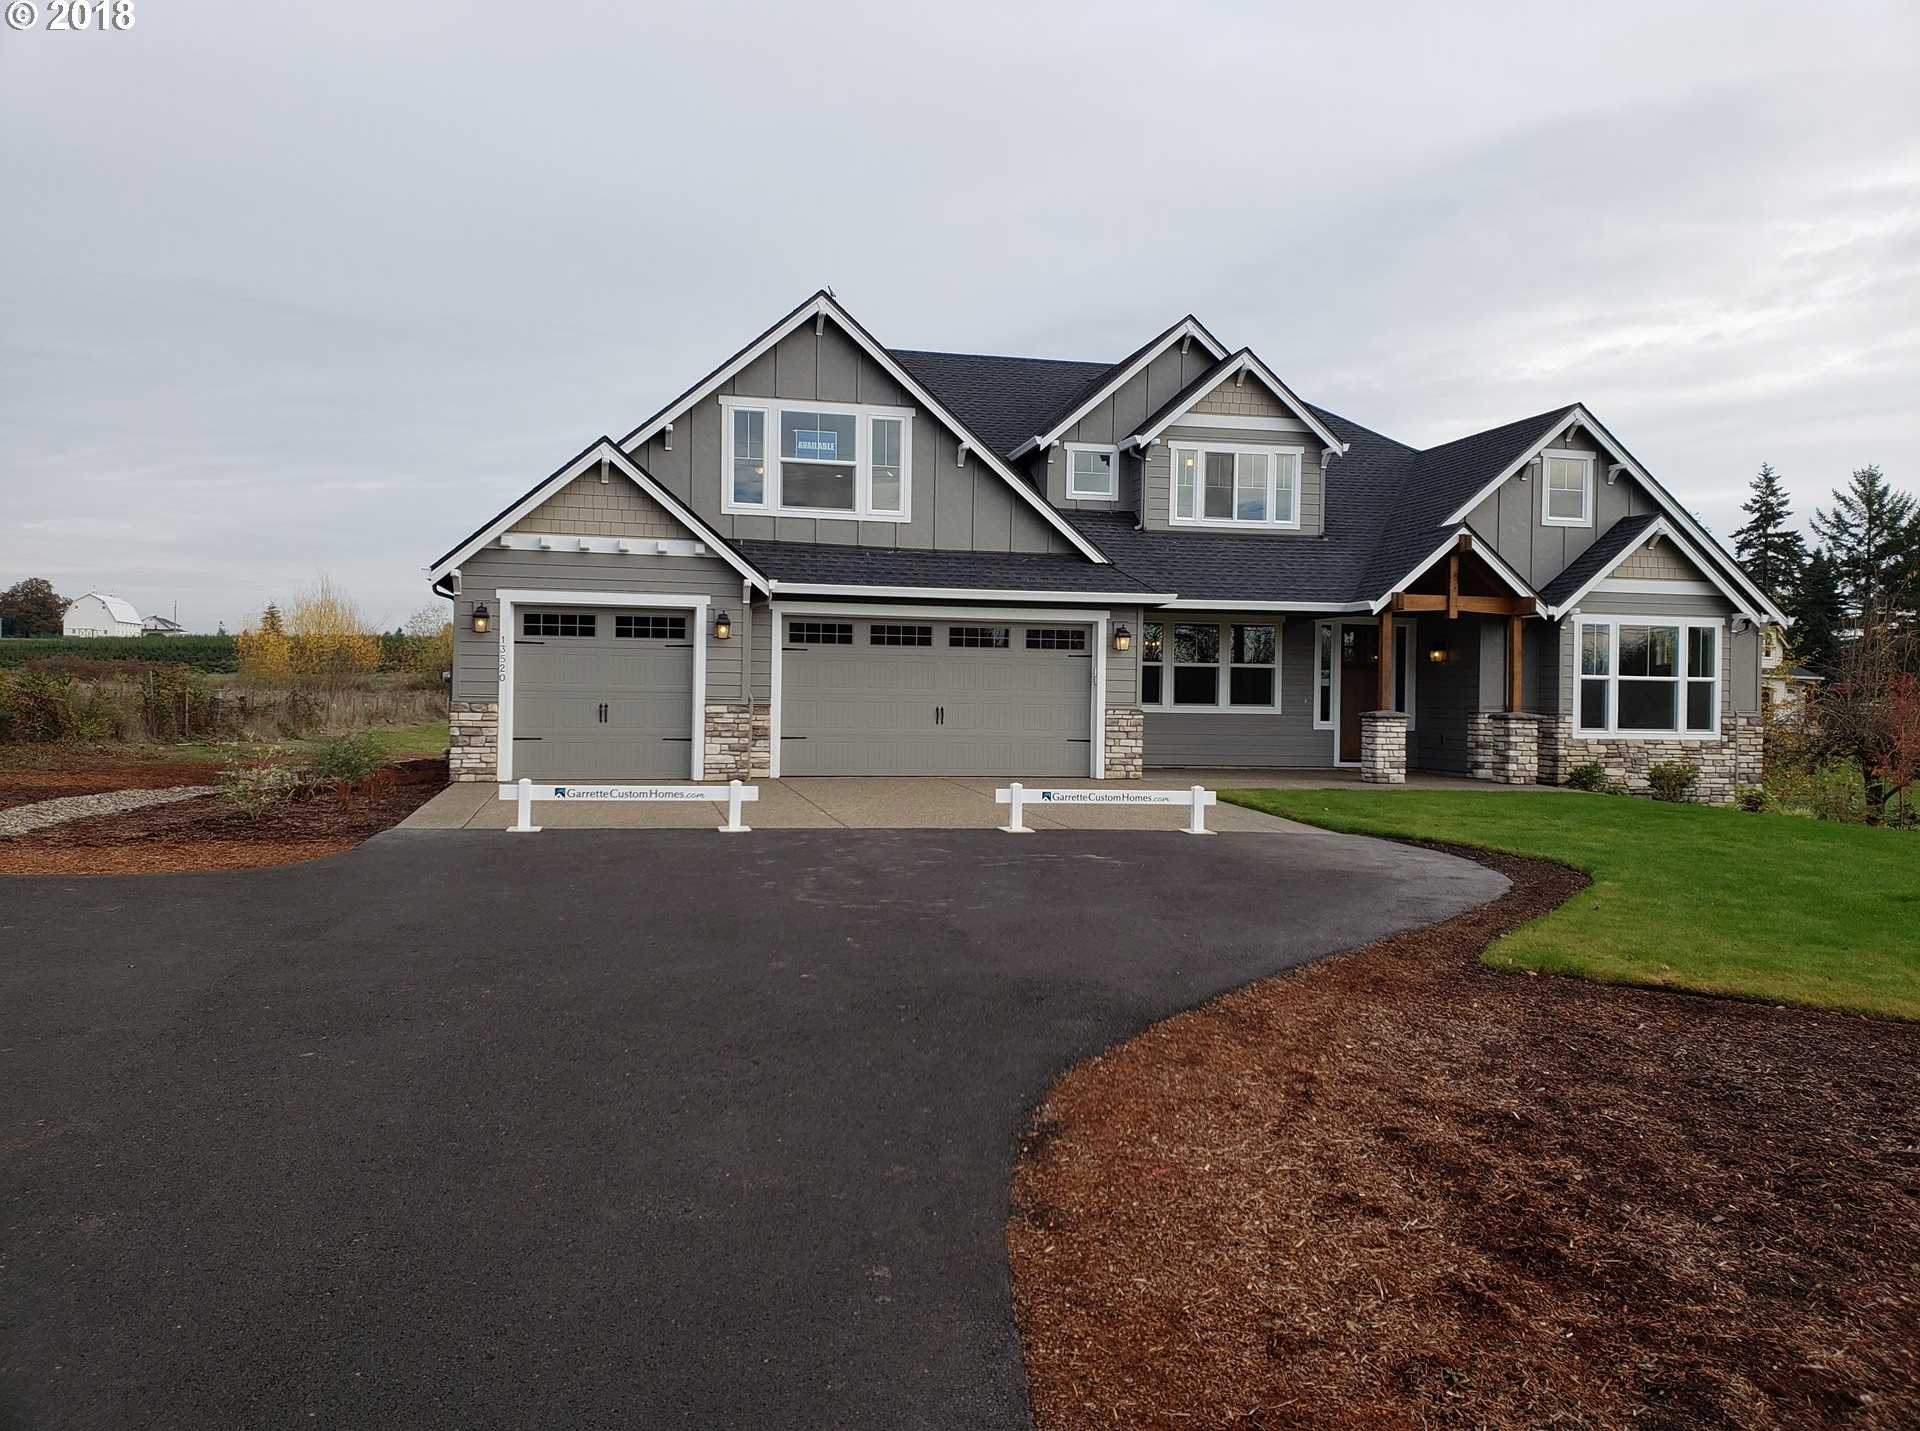 $997,000 - 4Br/4Ba -  for Sale in Beaverton